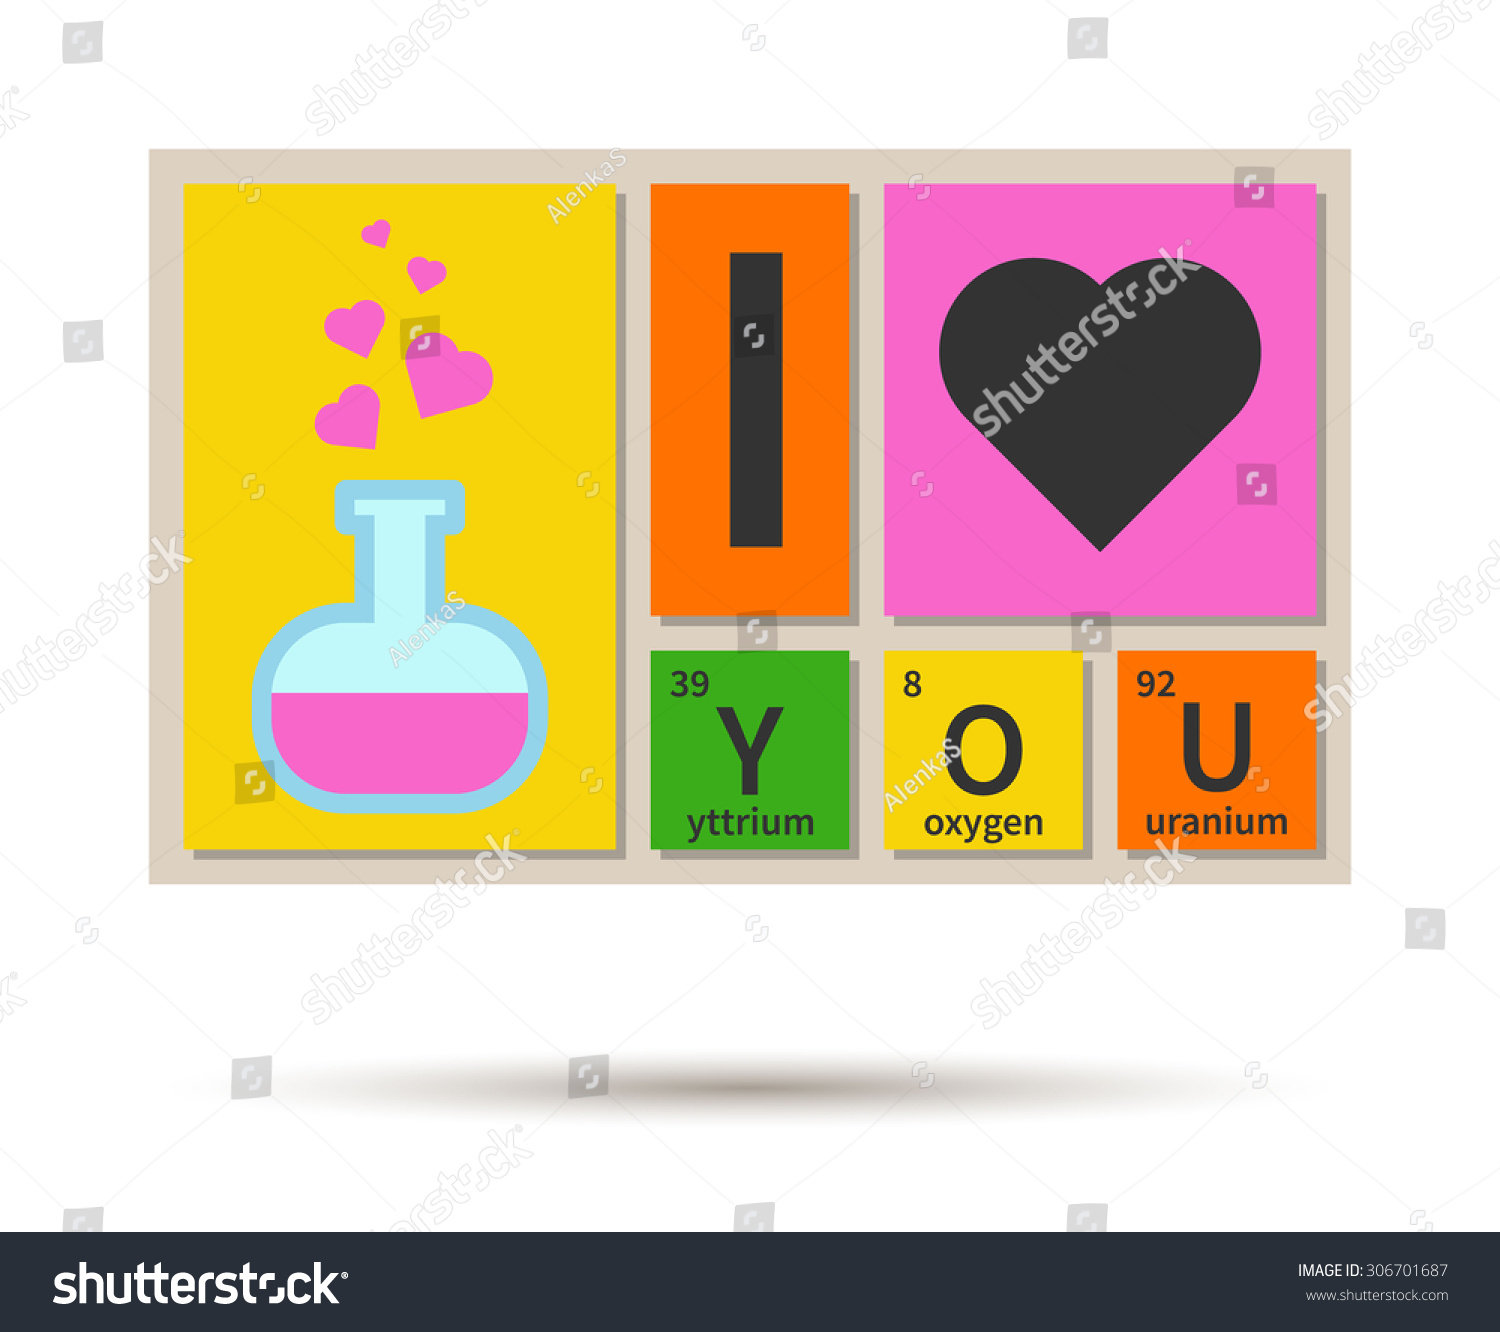 Periodic table element y gallery periodic table images love you banner chemistry theme periodic stock vector 306701687 i love you banner chemistry theme with gamestrikefo Gallery